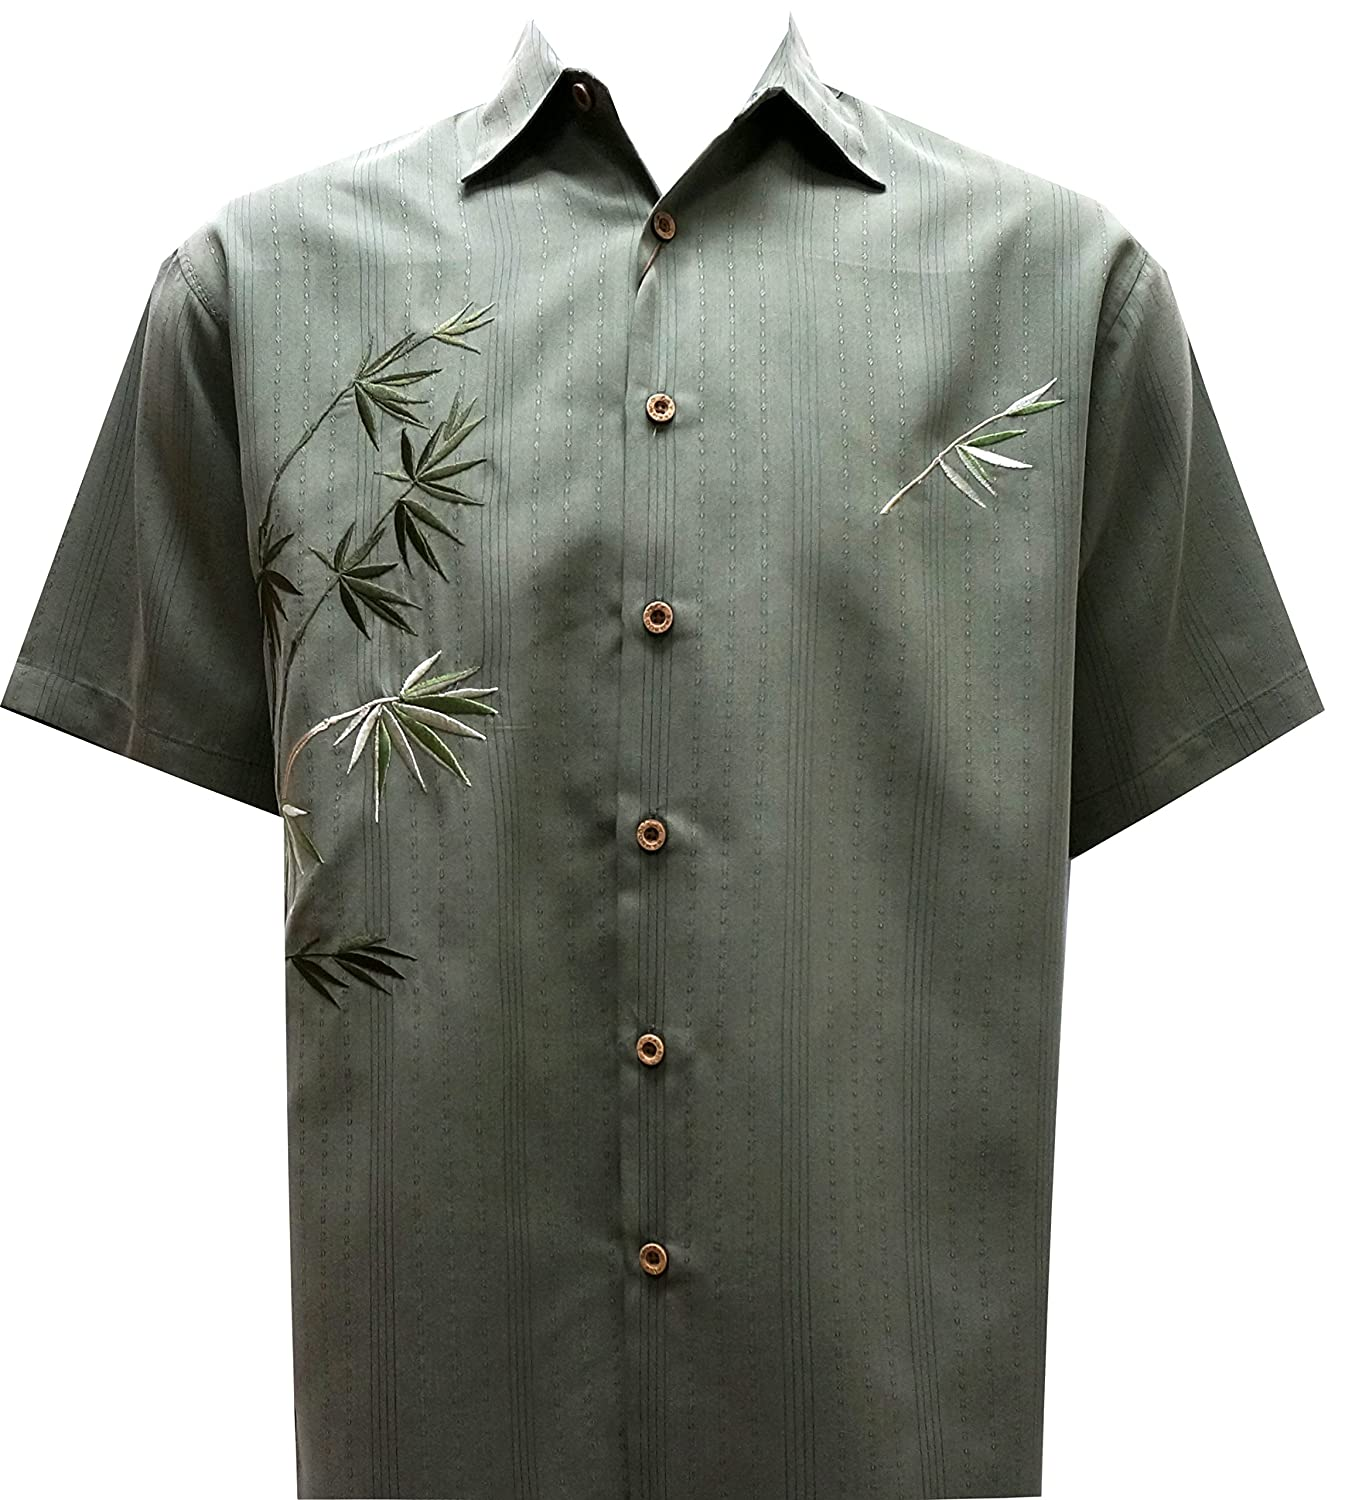 Bamboo Cay Mens Short Sleeve Flying Bamboos Casual Embroidered Woven Shirt WB 2006D